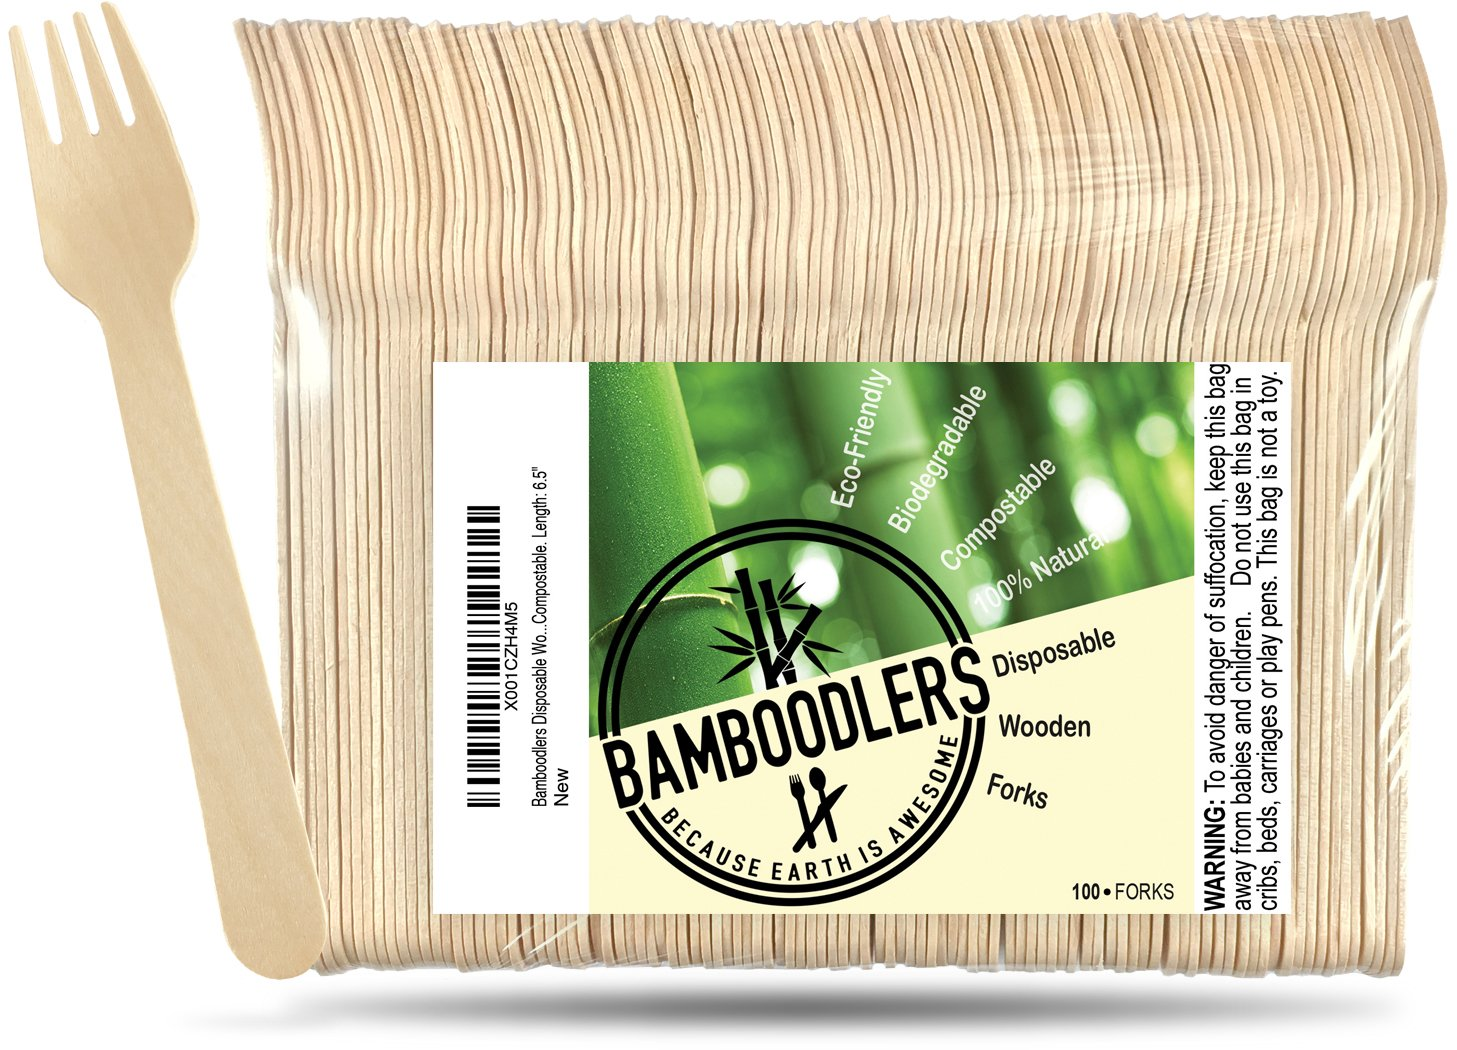 Disposable Wooden Forks by Bamboodlers | 100% All-Natural, Eco-Friendly, Biodegradable, and Compostable - Because Earth is Awesome! Pack of 100- 6.5'' forks.